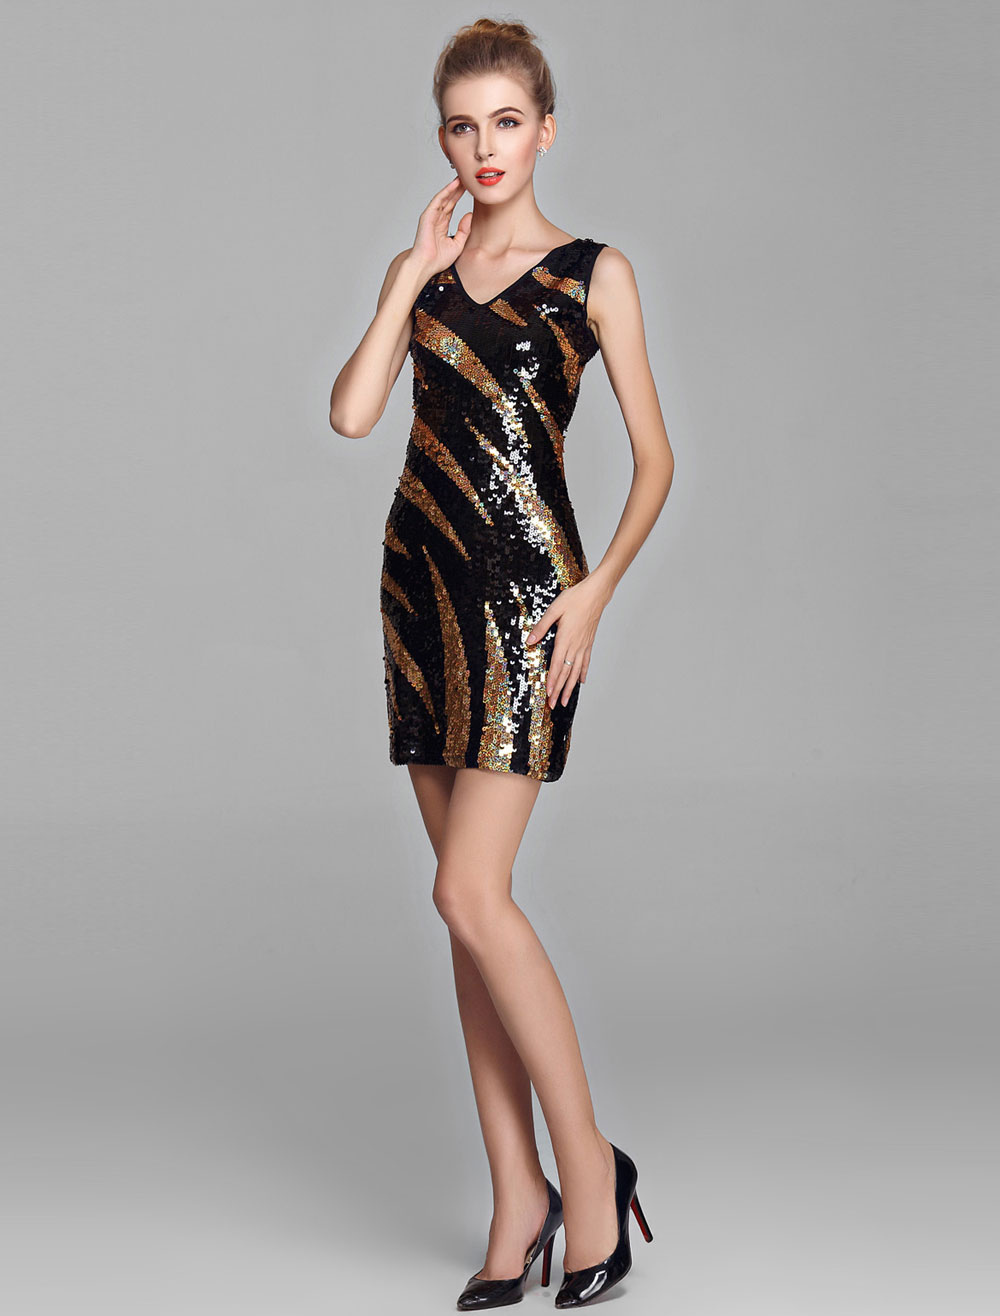 Fashion Double V-Look Sequin Gold and Black Cocktail Dress